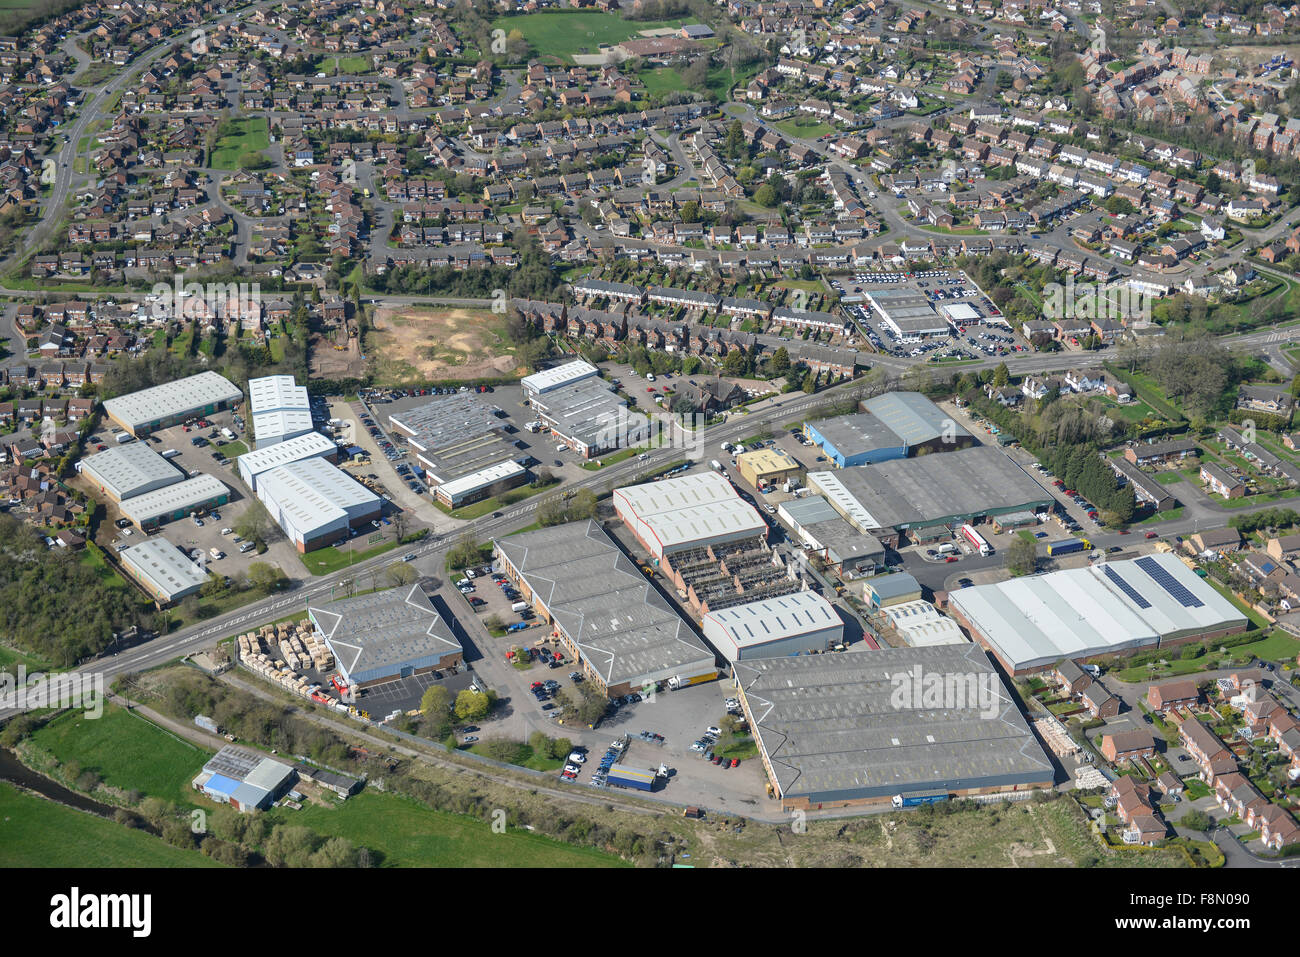 An aerial view of the Oaks Industrial Estate in Narborough, Leicestershire - Stock Image